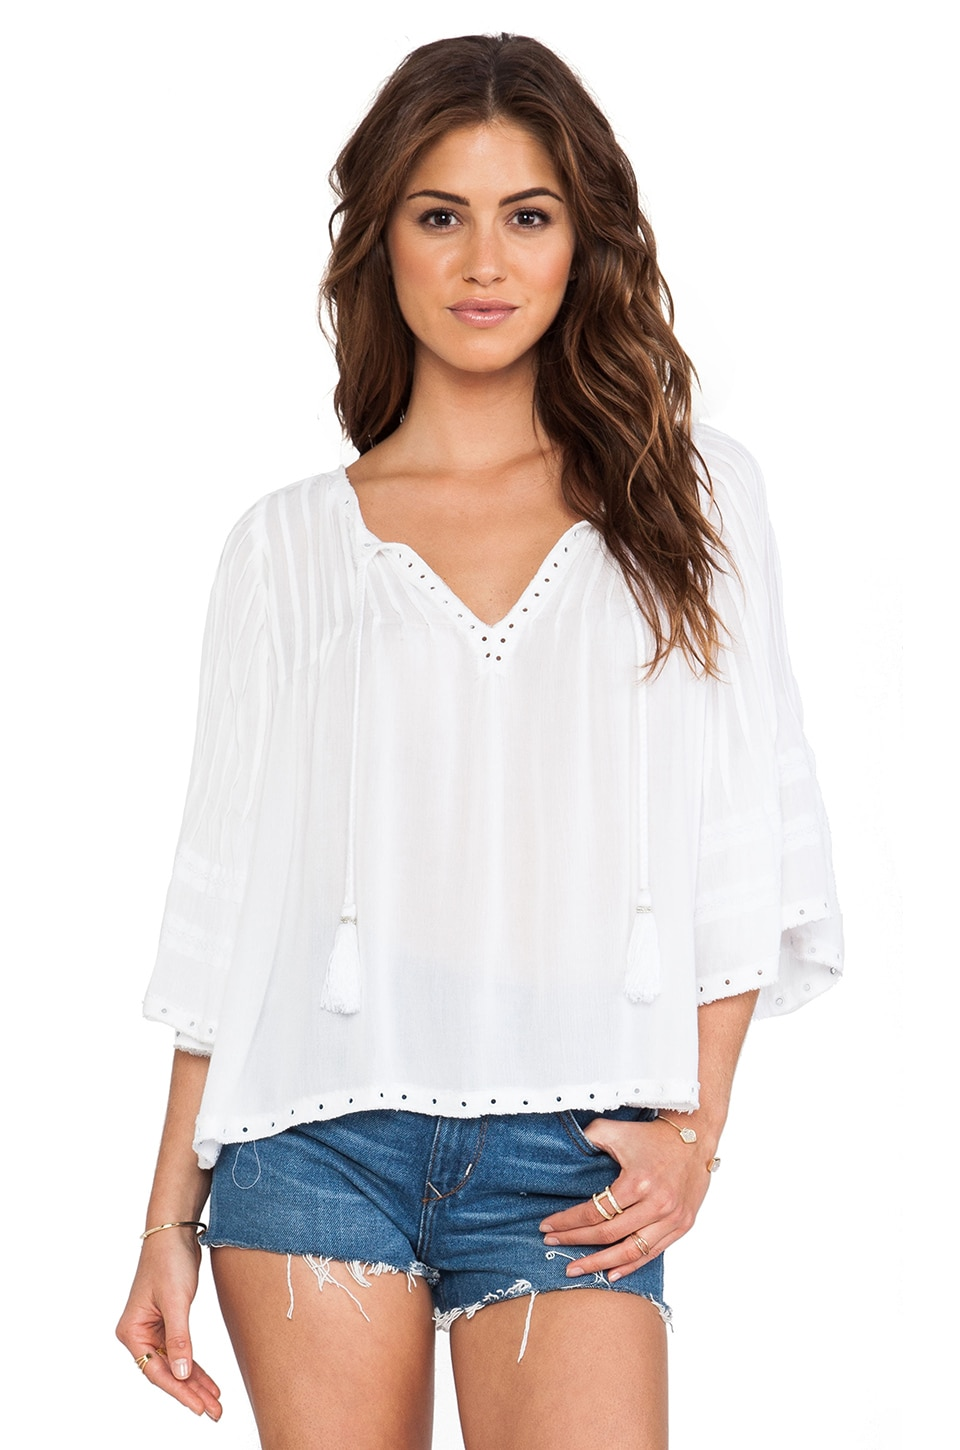 Tularosa Huxley Top in White